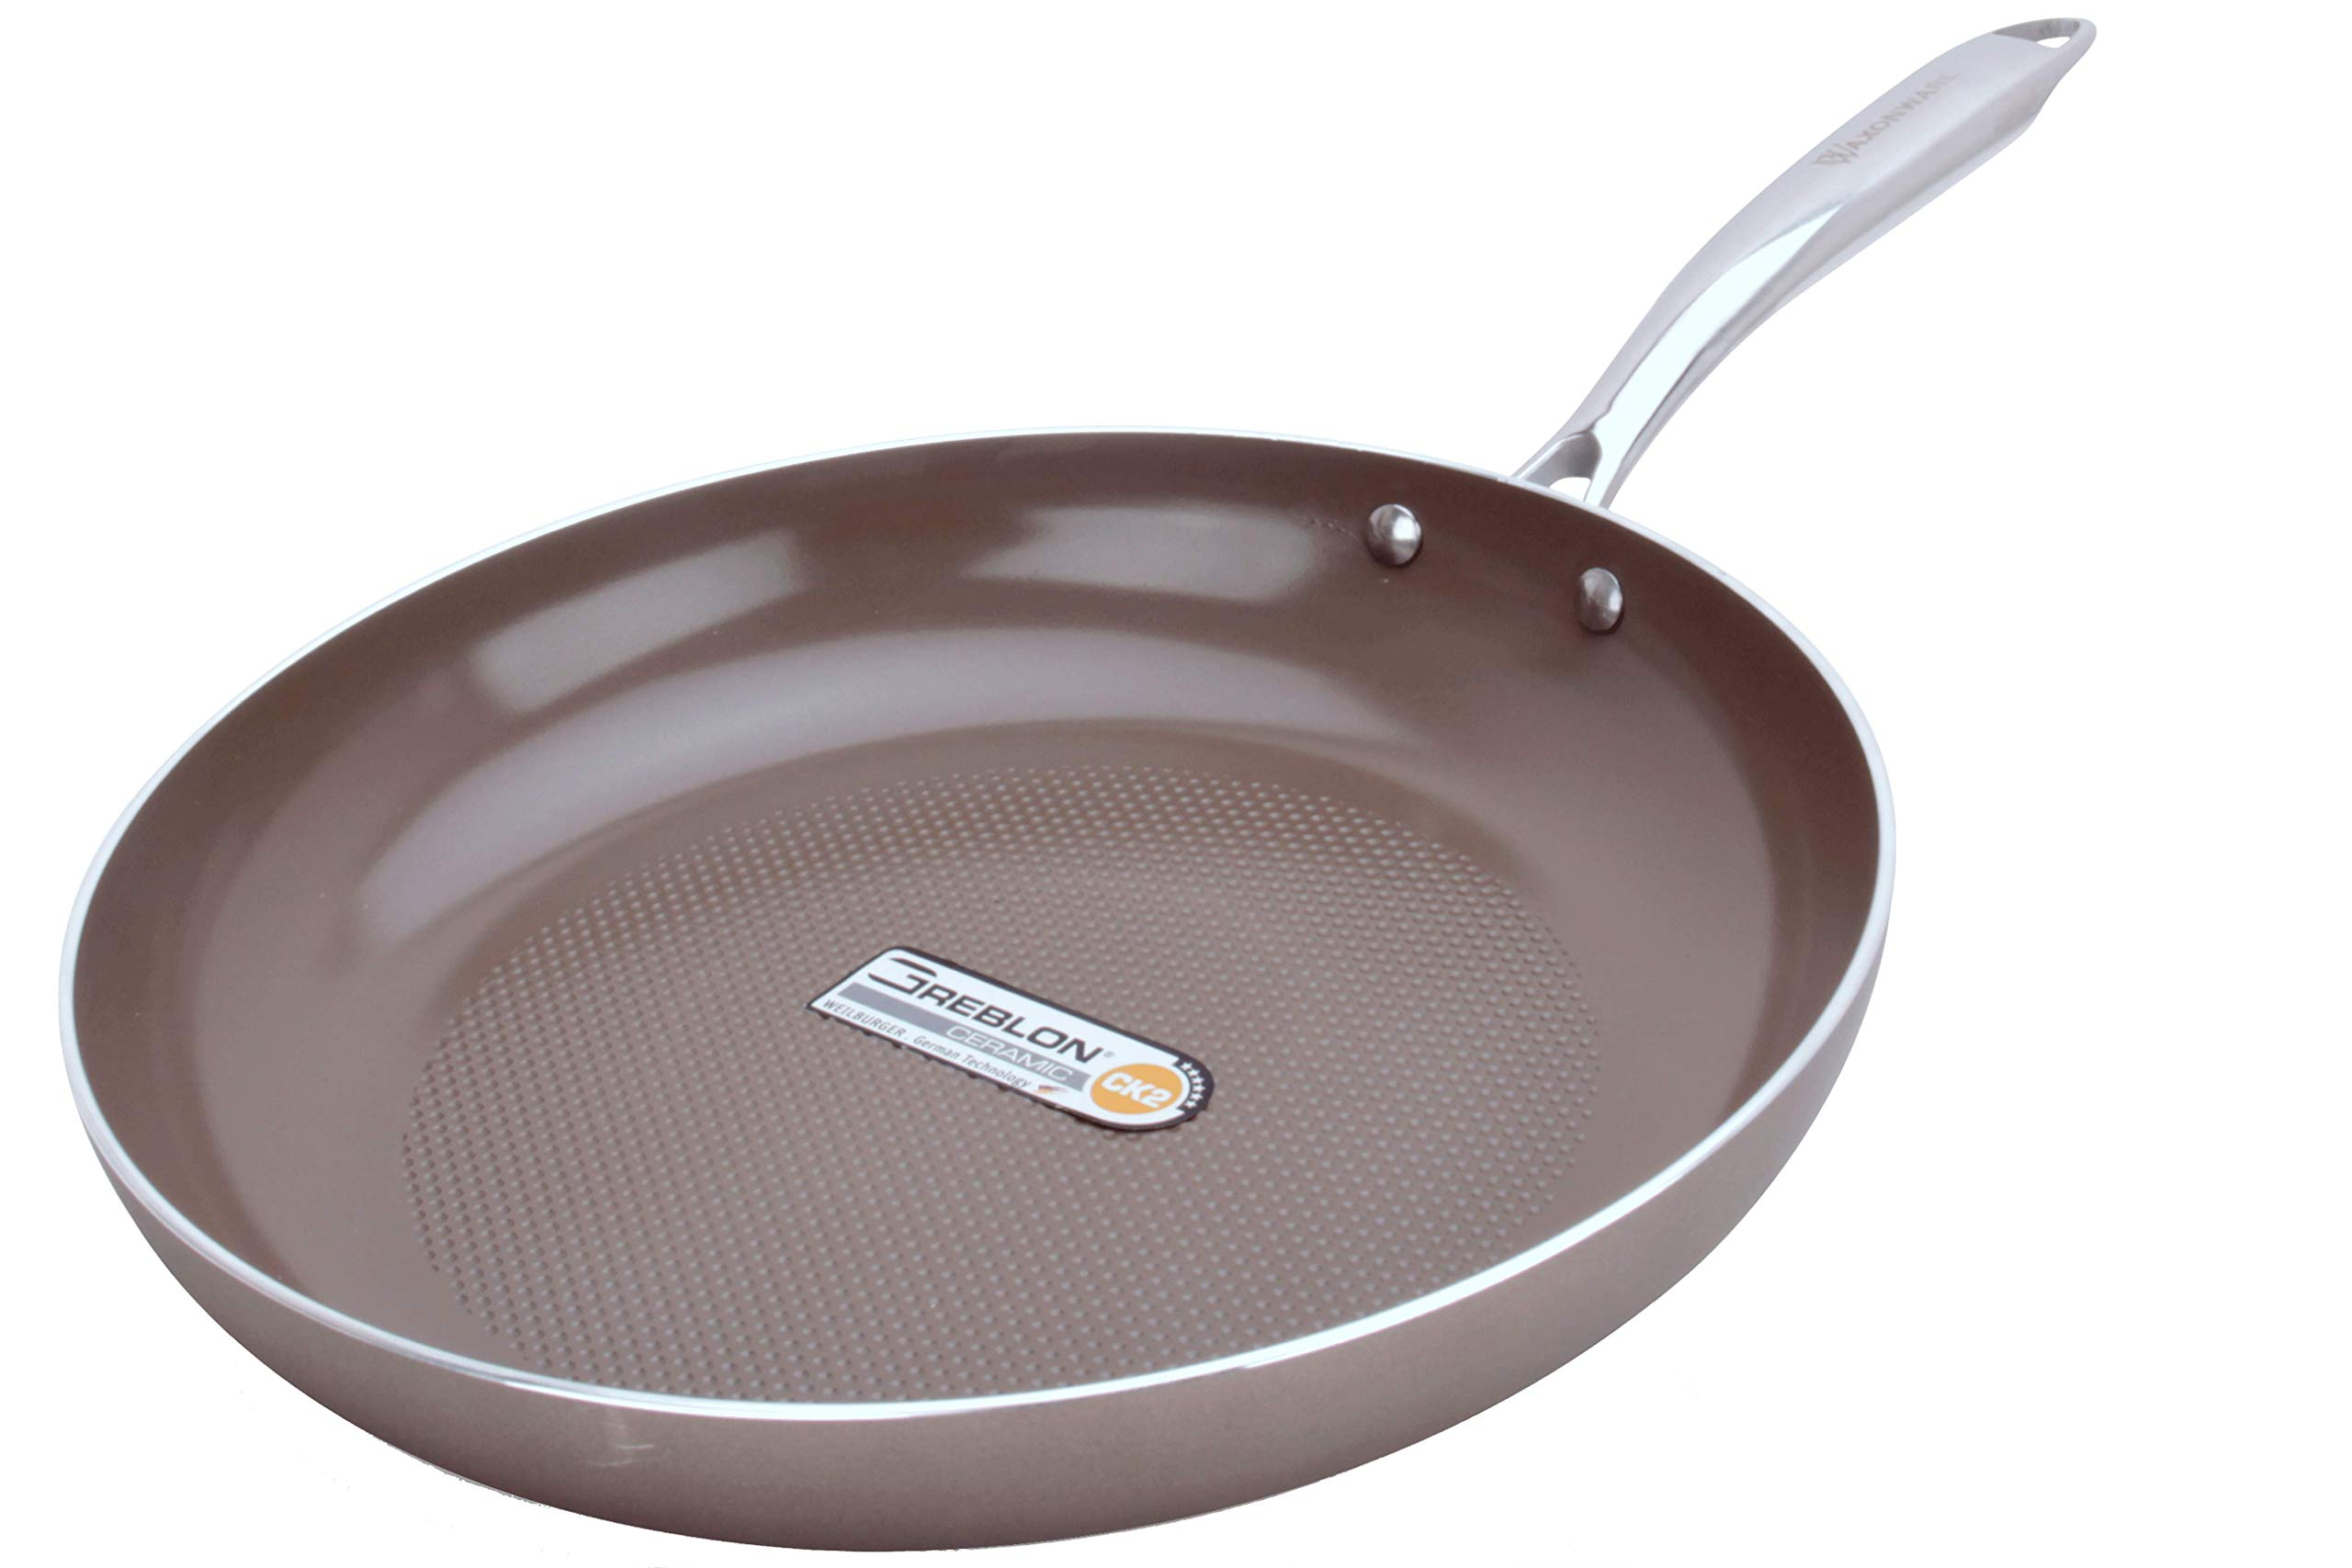 WaxonWare 8.5 & 12 Inch Ceramic Nonstick Frying Pans, Non Toxic PTFE APEO PFOA Free Nonstick Skillets, Induction Compatible, Dishwasher & Oven Safe Omelette Fry Pan With German Coating (HIVE Series) by WaxonWare (Image #2)